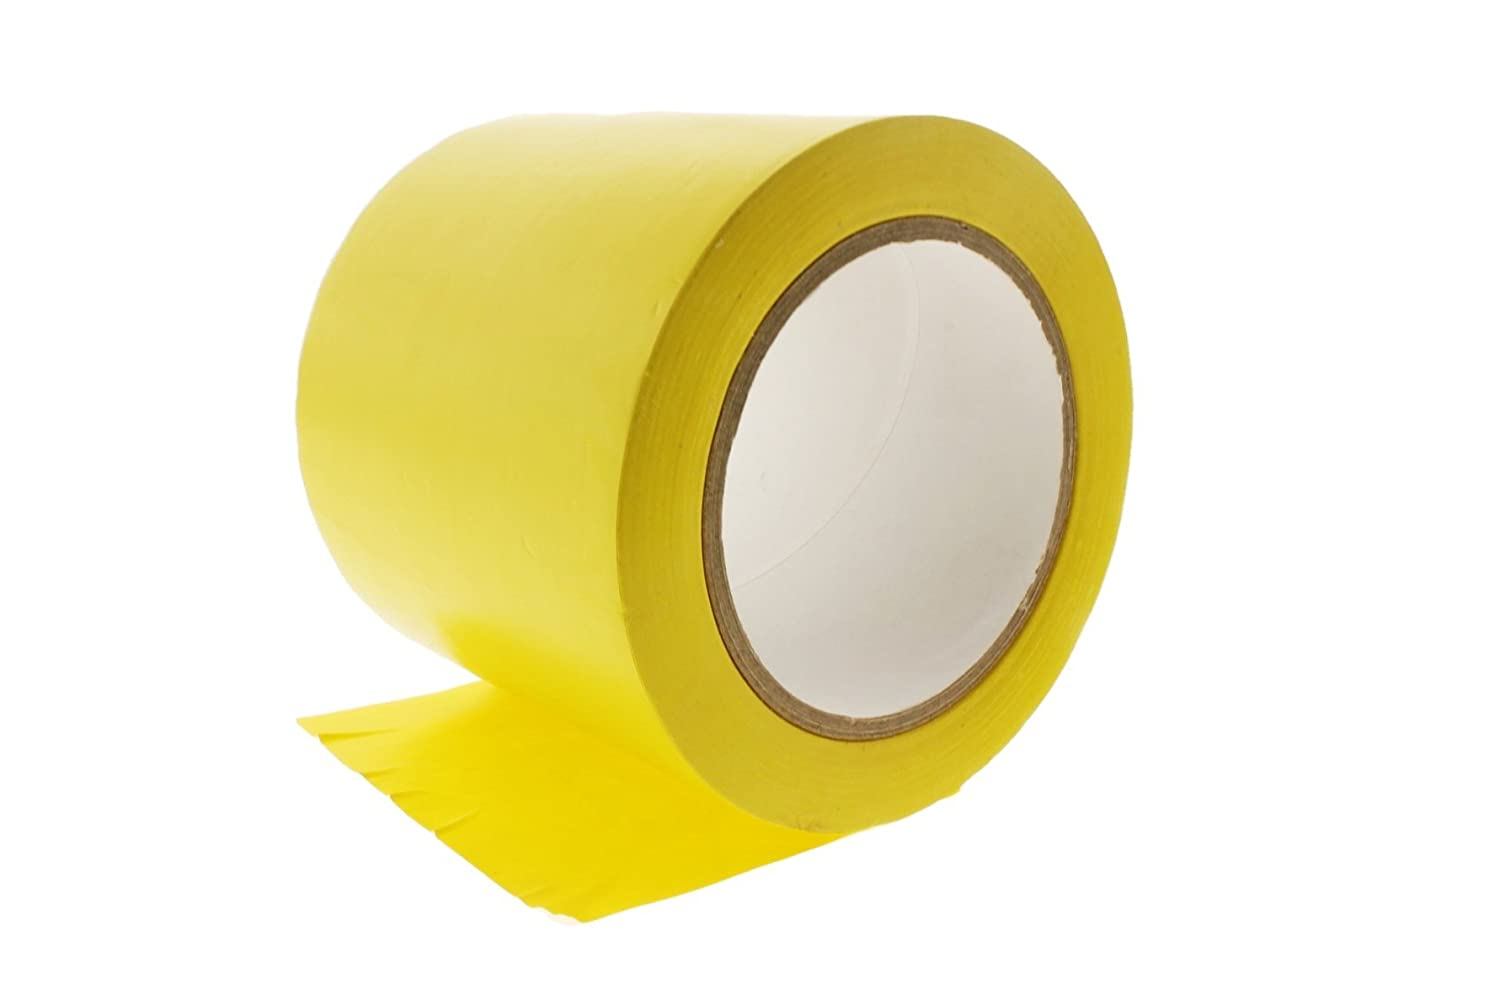 4 General Purpose Yellow Insulated Adhesive PVC Vinyl Sealing Coding Marking Electrical Tape 3.76 in 96MM 36 yard 7 mil